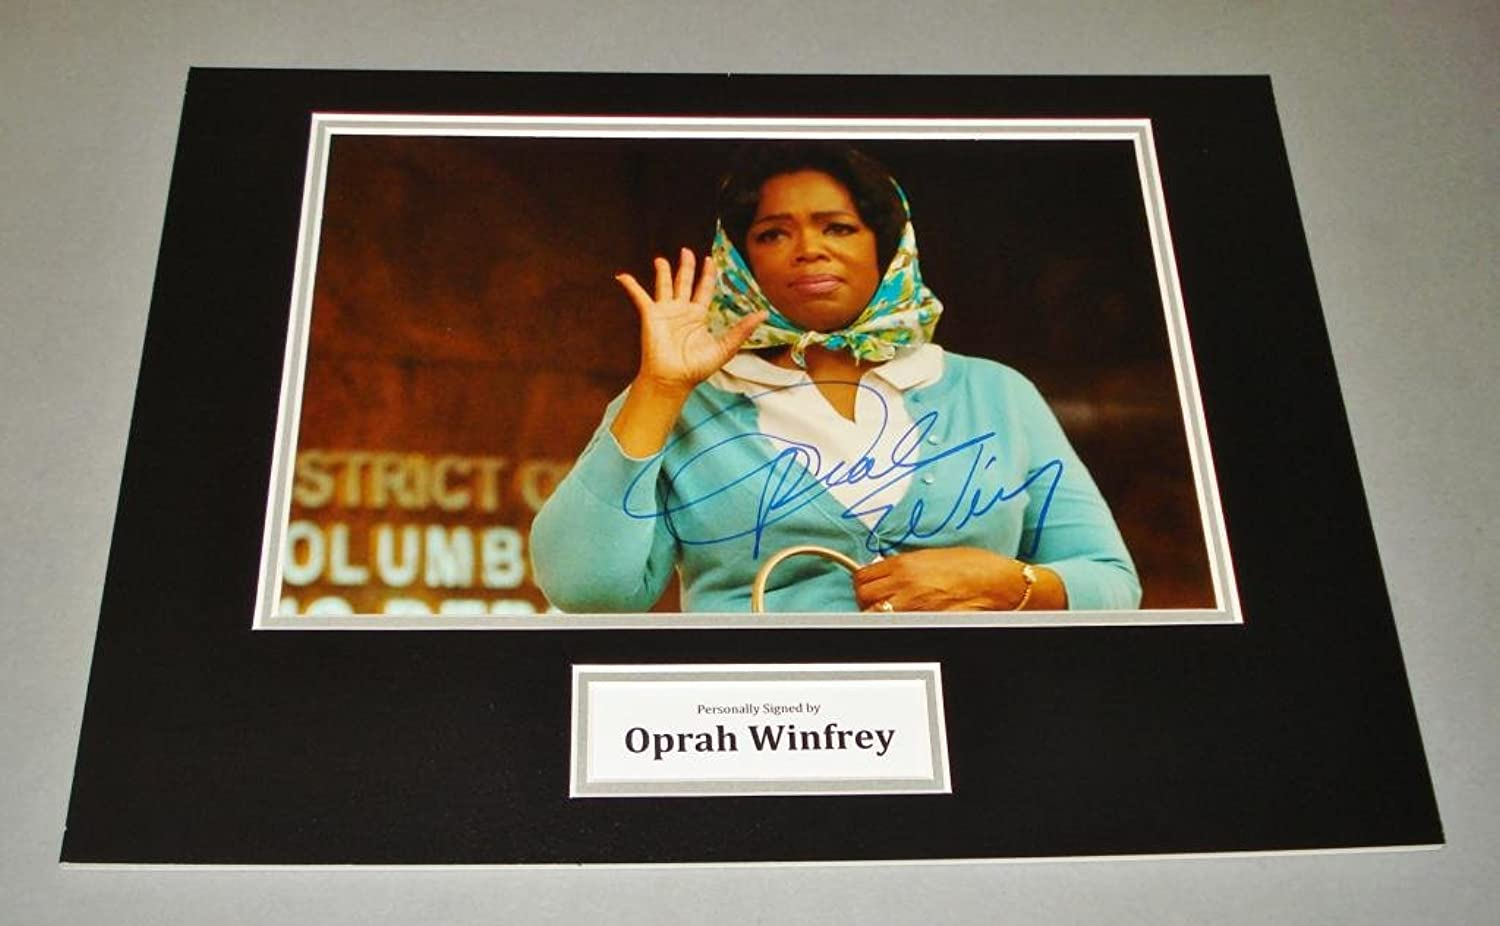 Up North Memorabilia Oprah Winfrey Signed Photo 16x12 The Oprah Winfrey Show Autograph Display + COA